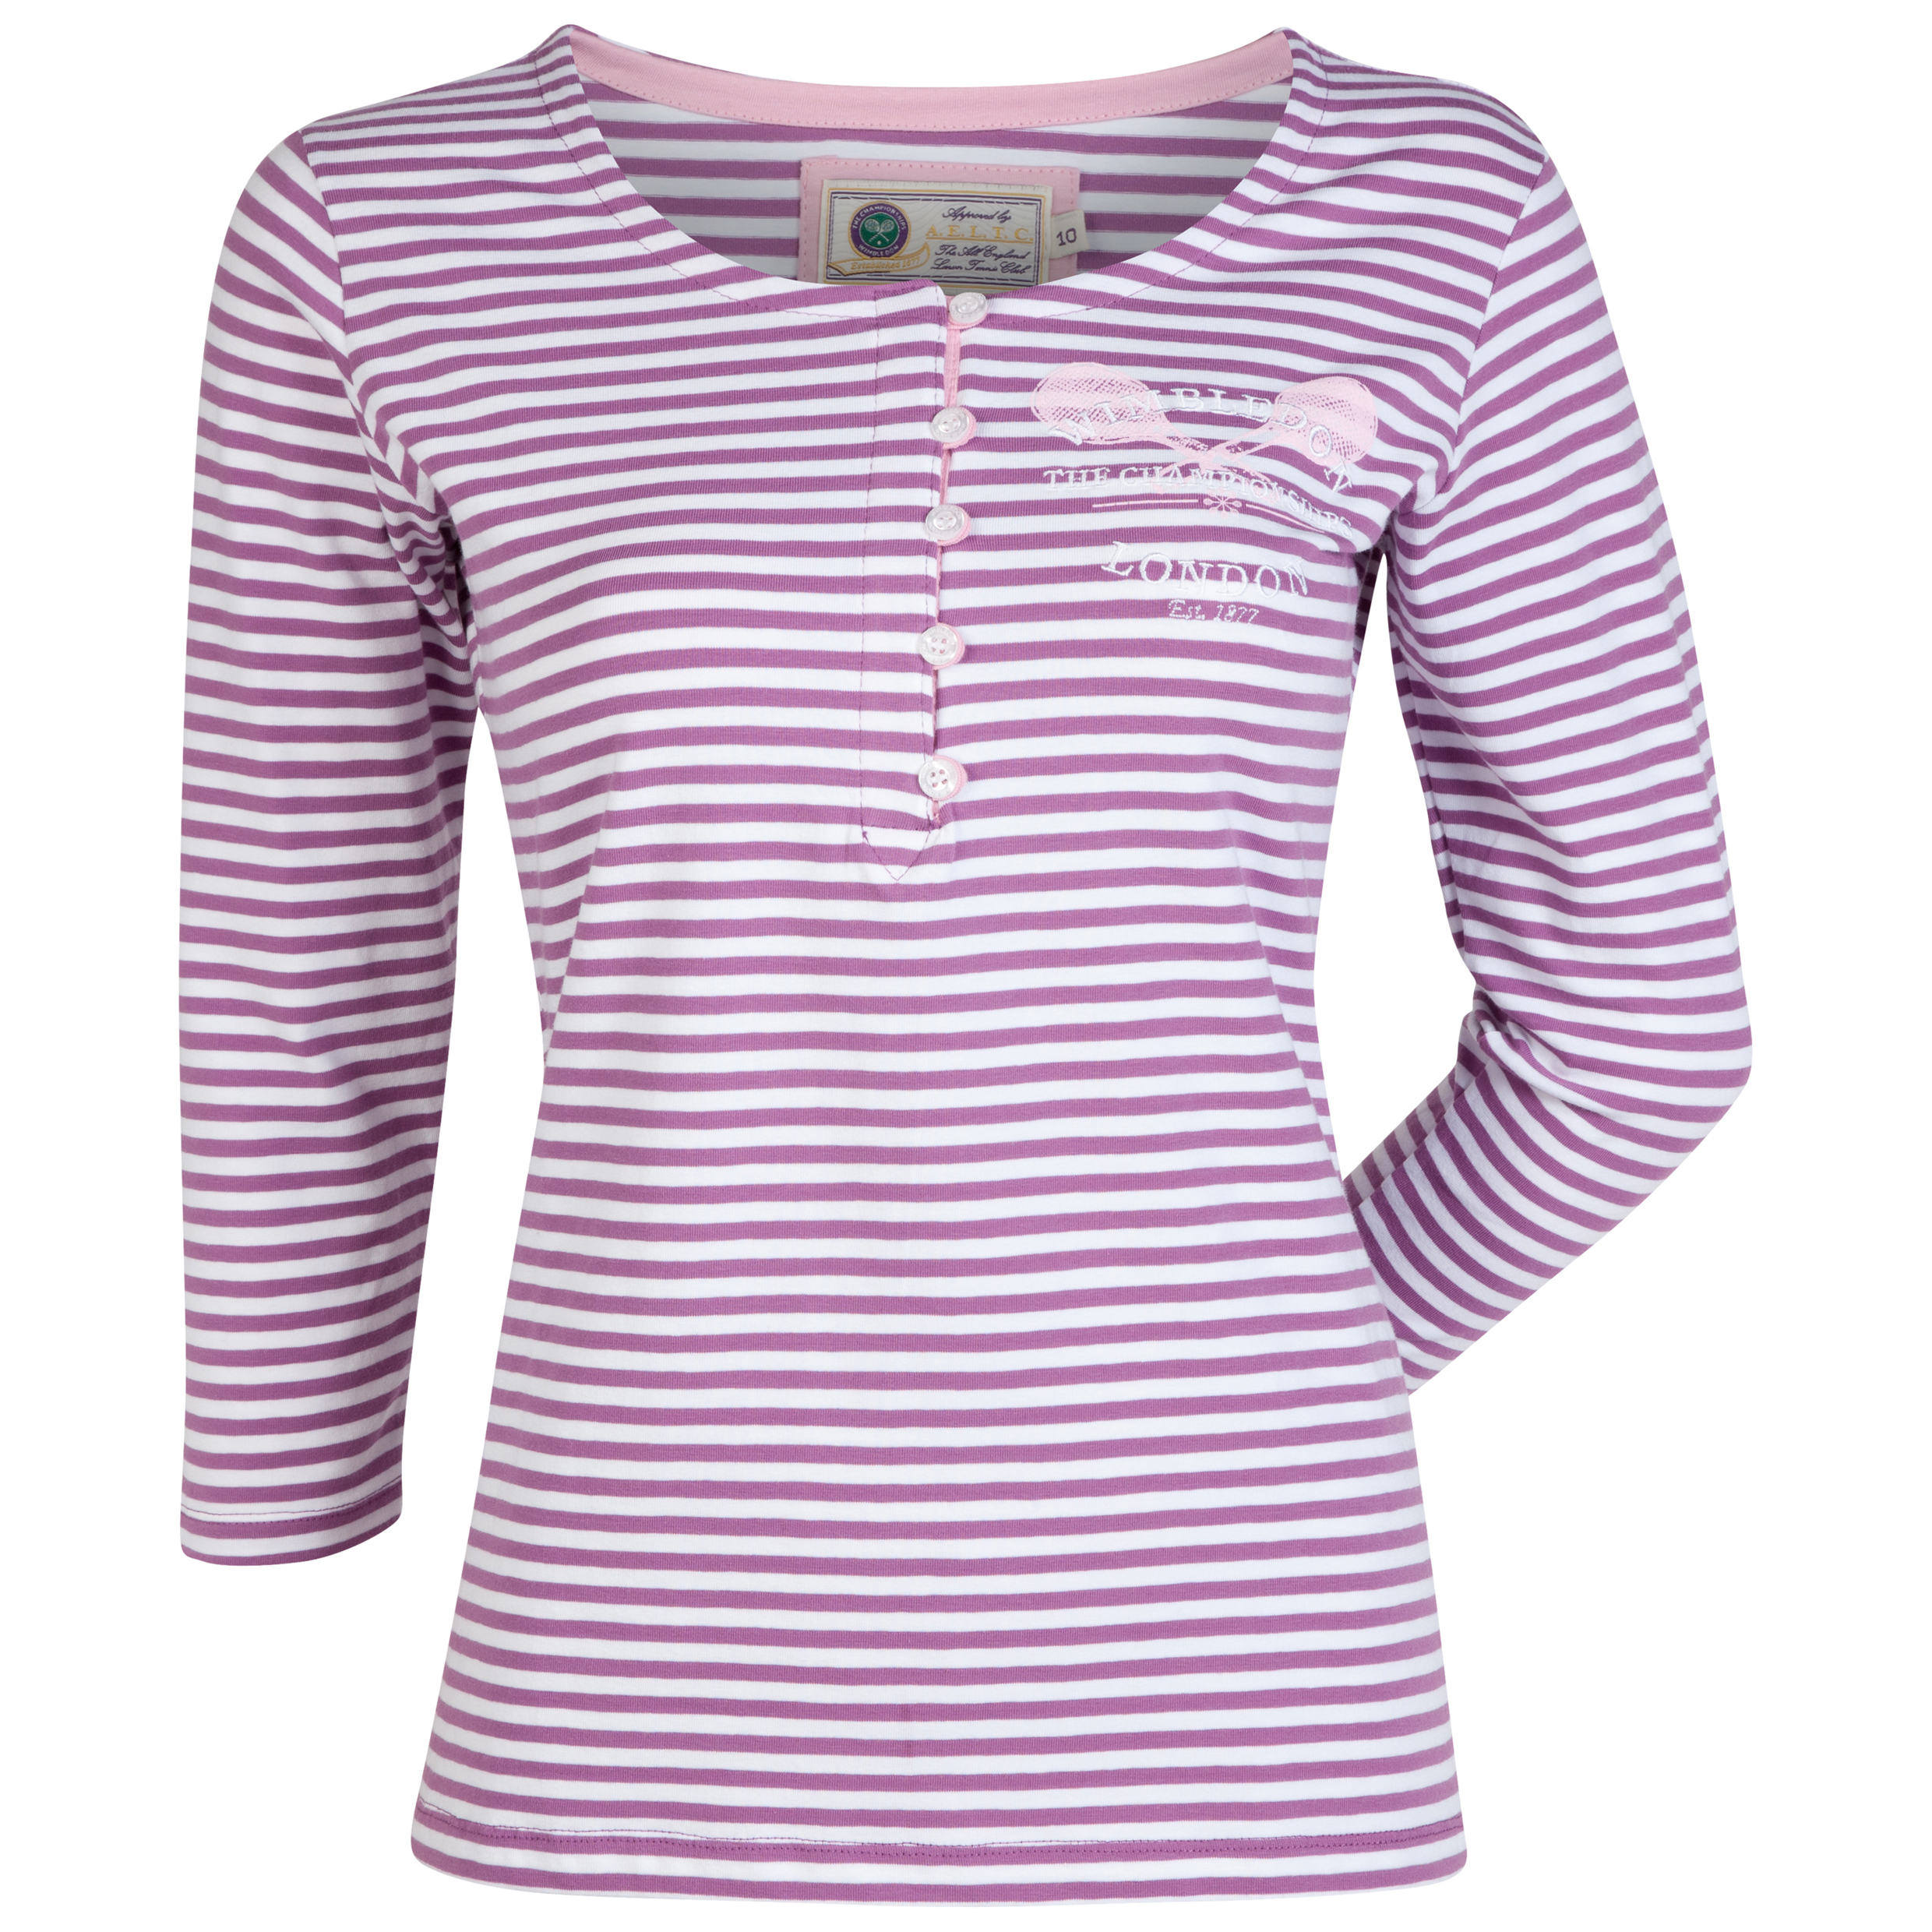 Wimbledon 3/4 Sleeve Striped T-Shirt - Ladies